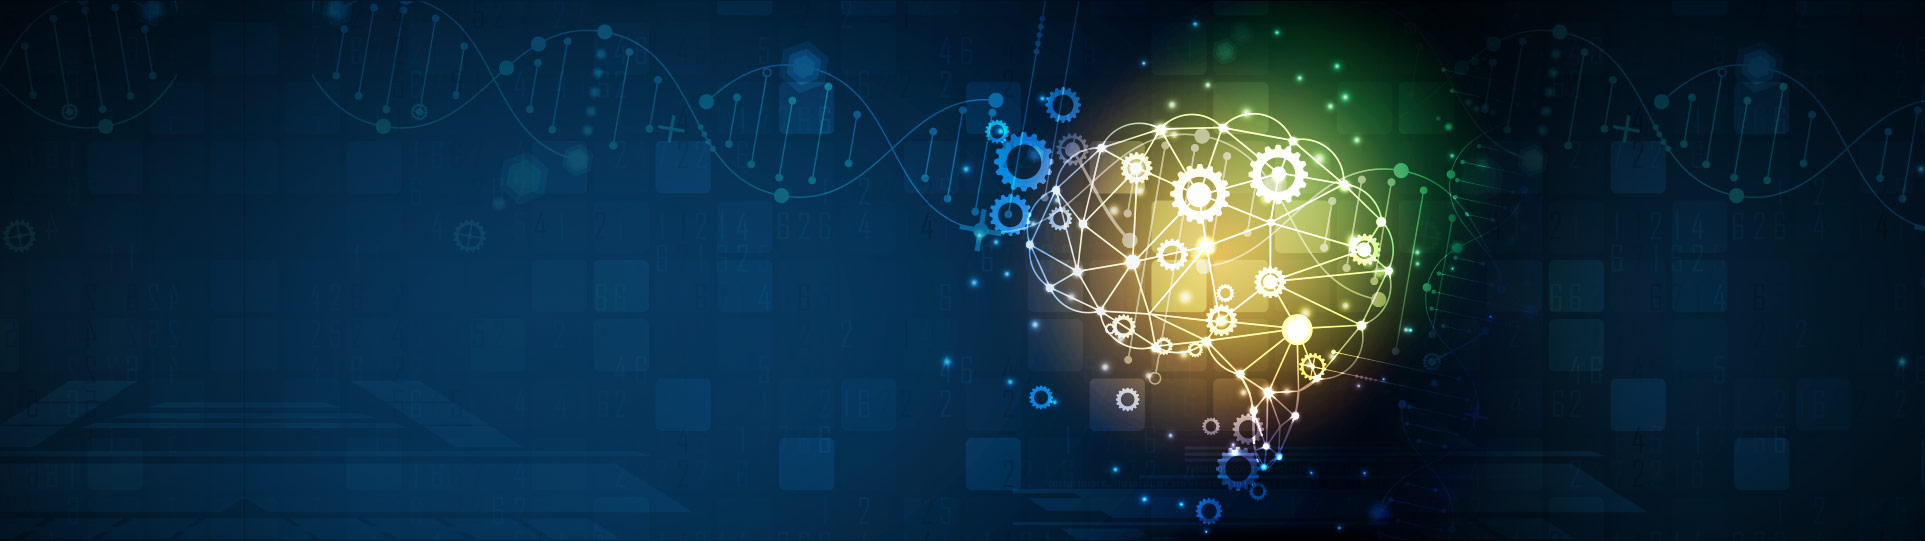 Embracing the New Normal: Business Resiliency in the Life Sciences Industry